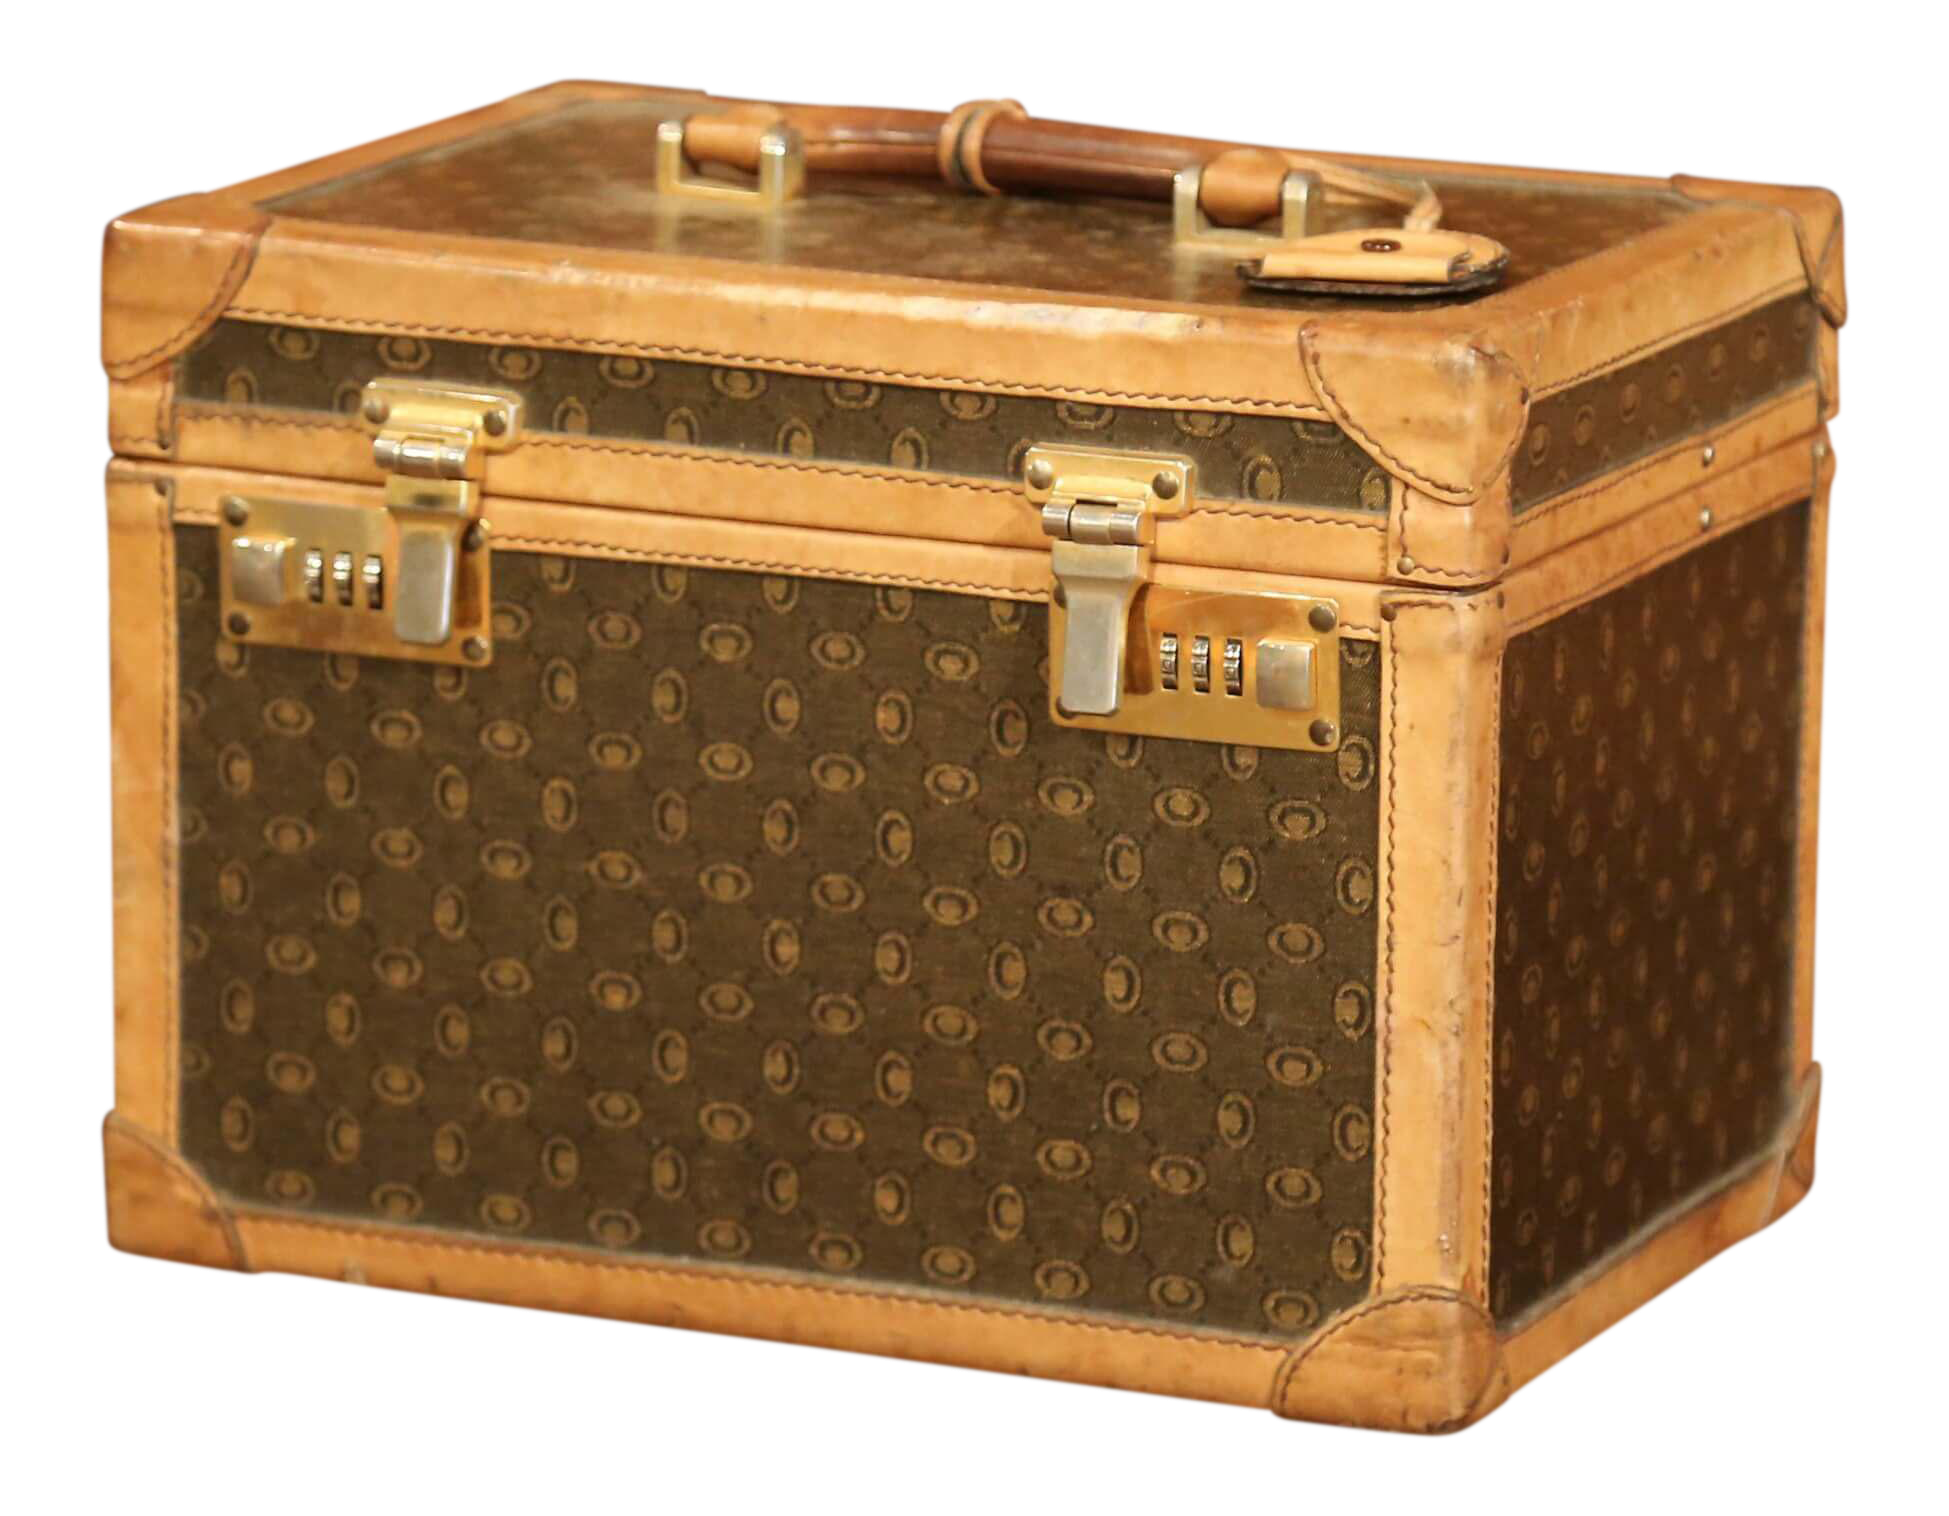 19th Century French Leather Toiletry Box With Decorative Trim And Brass  Hardware